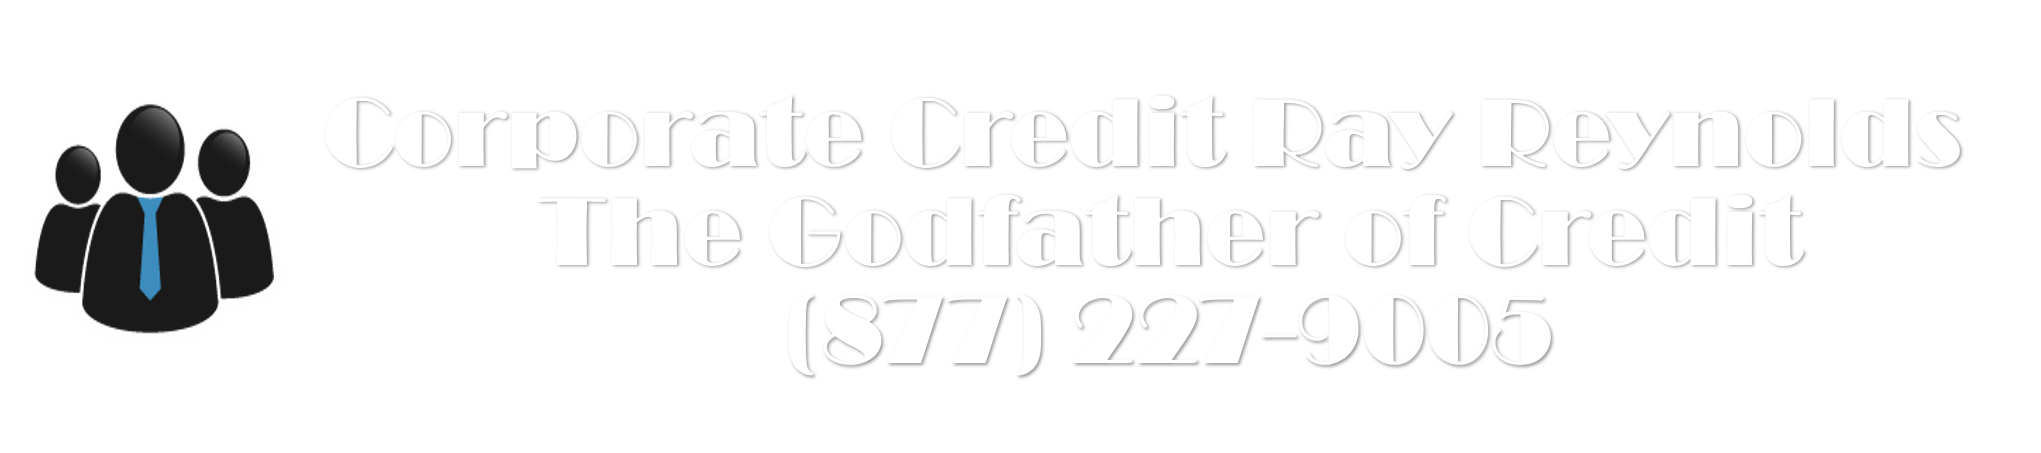 Corporate Credit Ray Reynolds